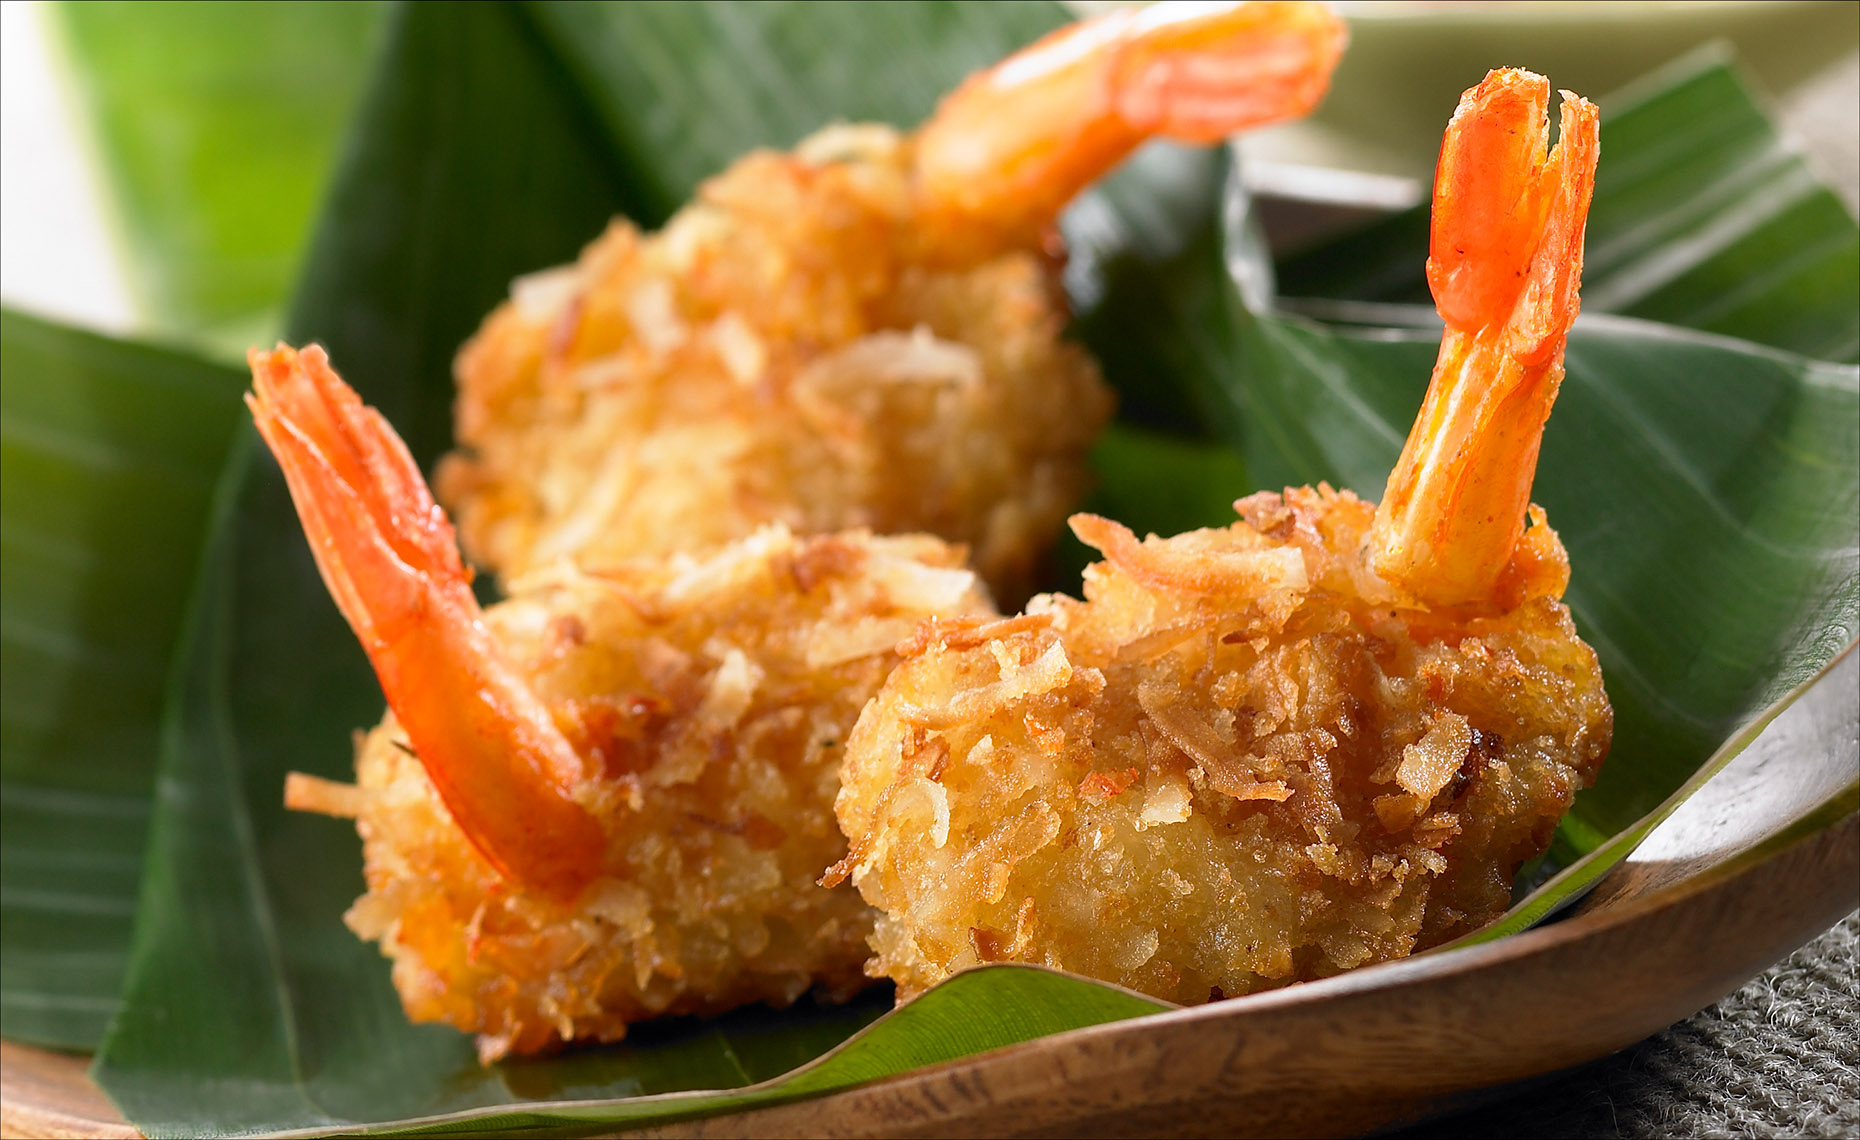 Food Photographer, Seafood Photography, Appetizer Photography | Pohuski Studios,  Coconut Shrimp